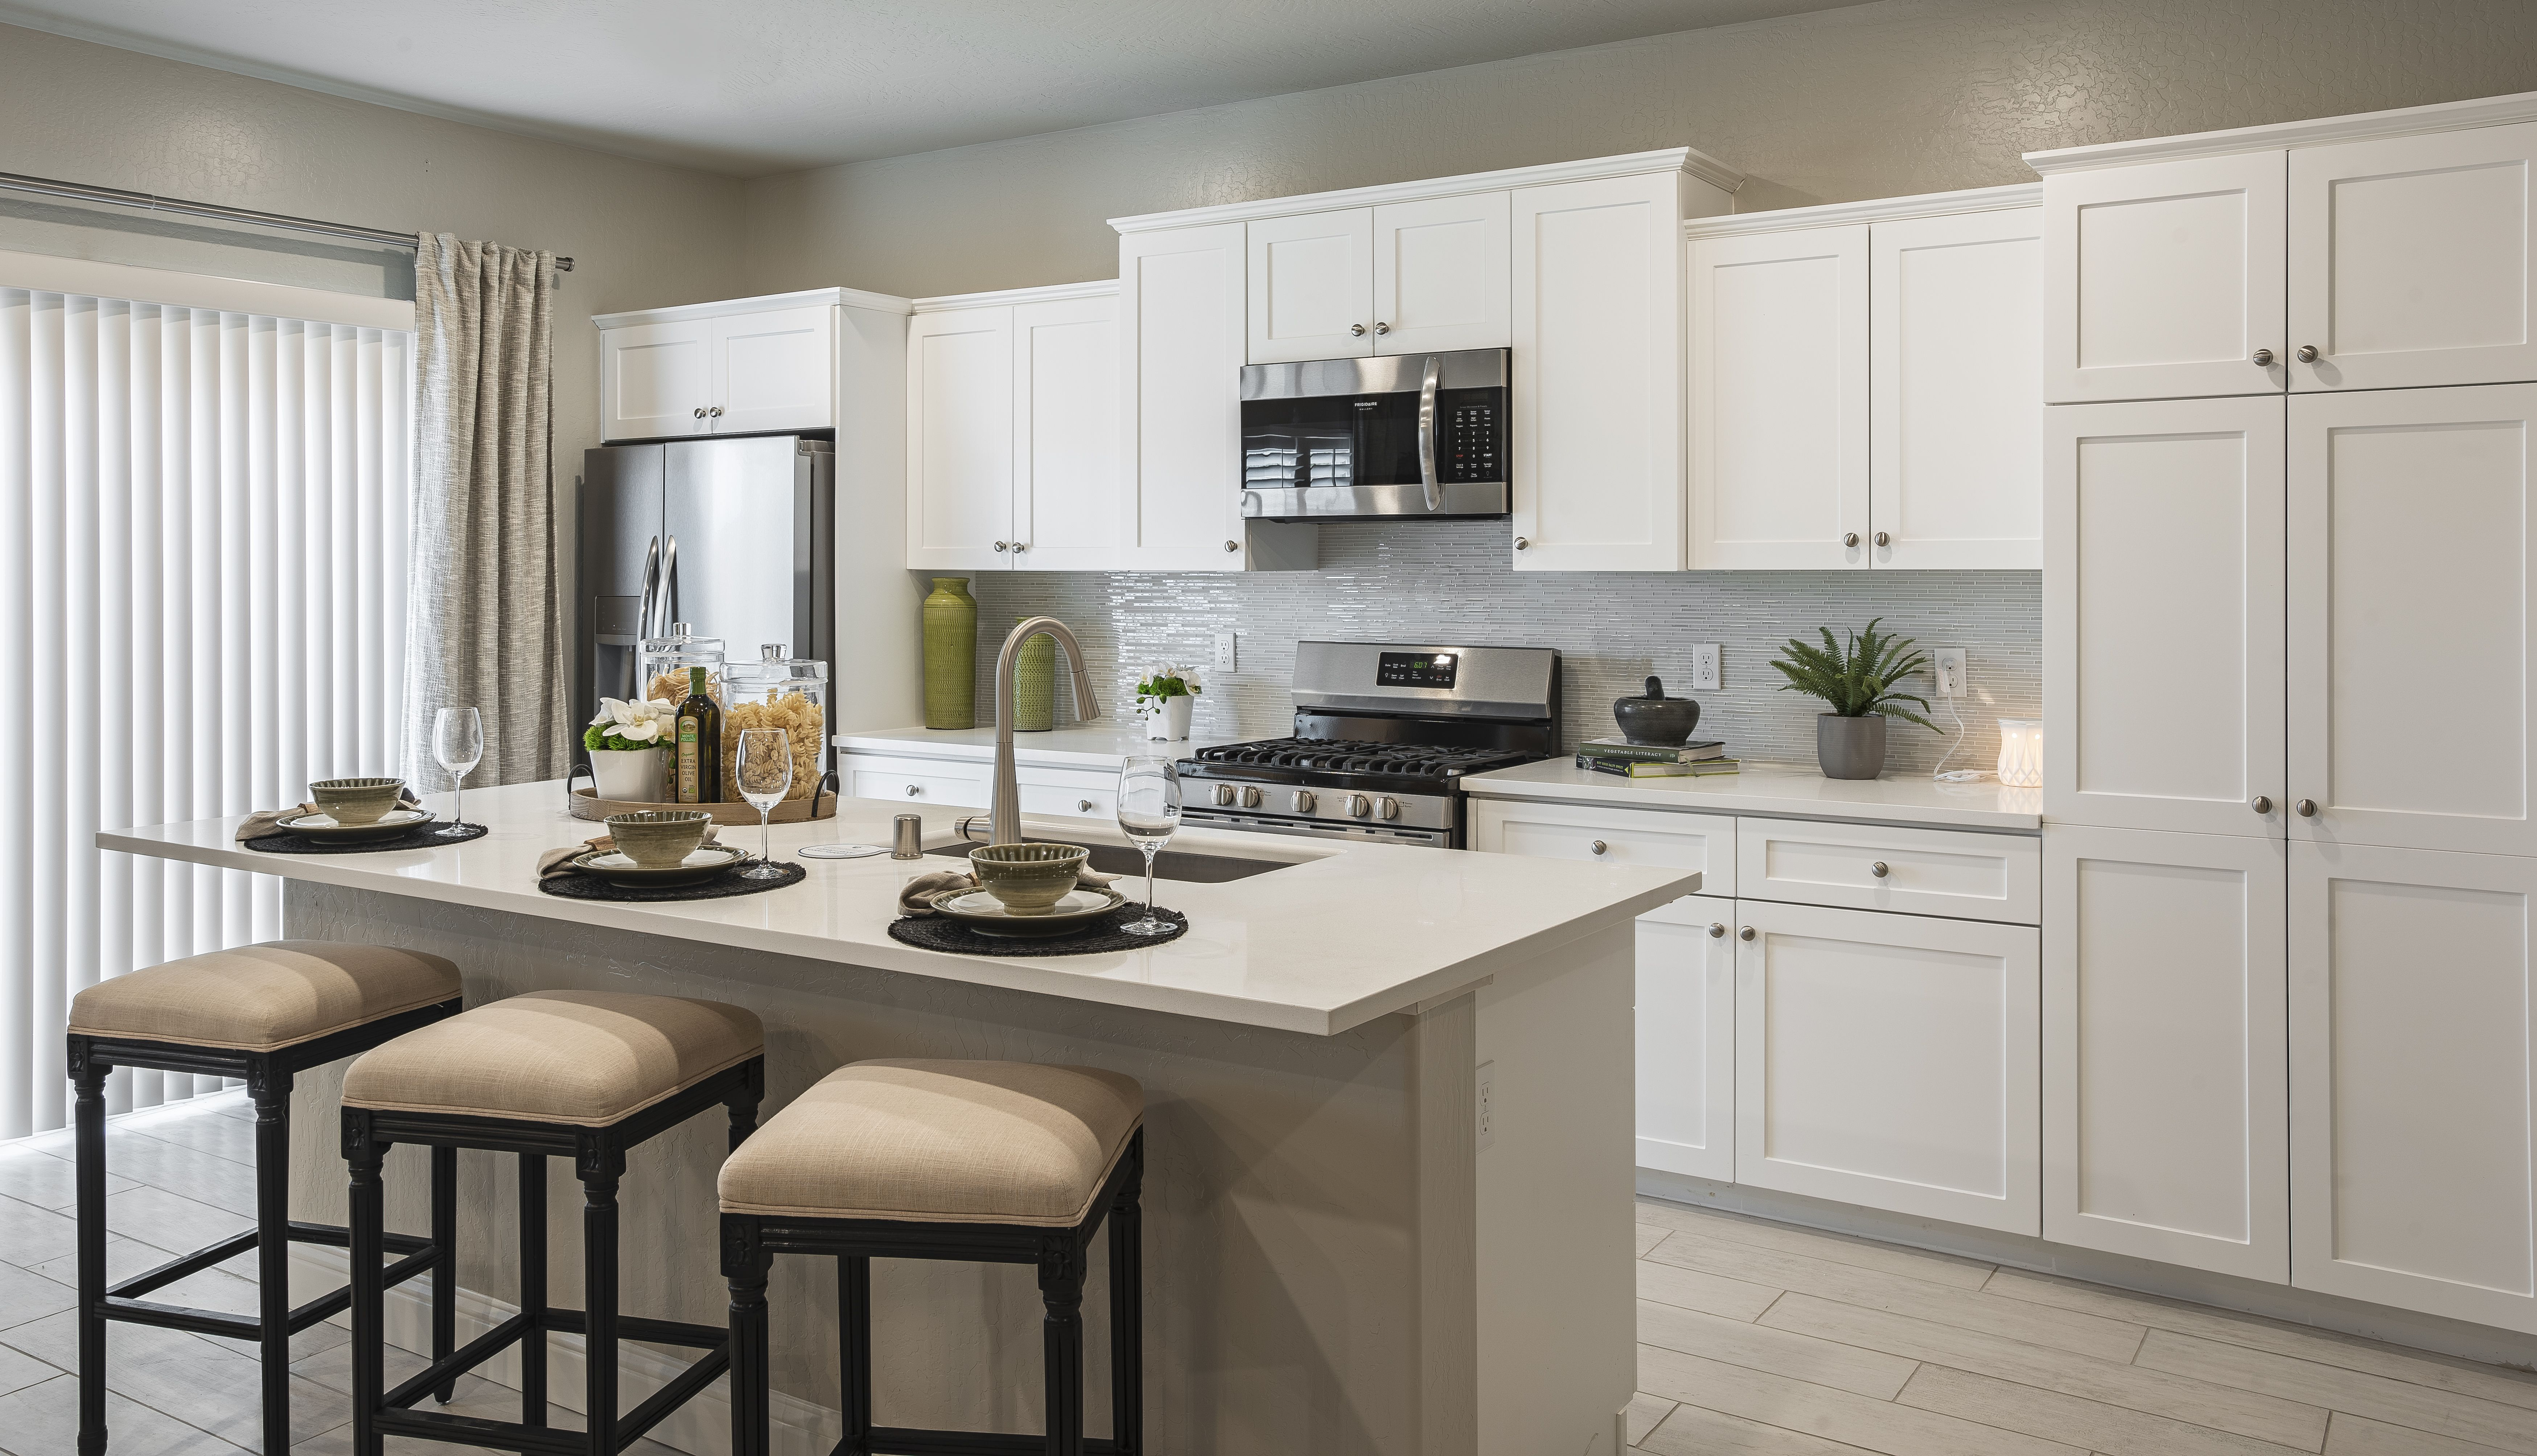 White Kitchen Cabinets With Quartz Counter Tops And Glass Backsplash Cream And Green Kitchen Deco In 2020 Green Kitchen Decor White Shaker Cabinets New Homes For Sale